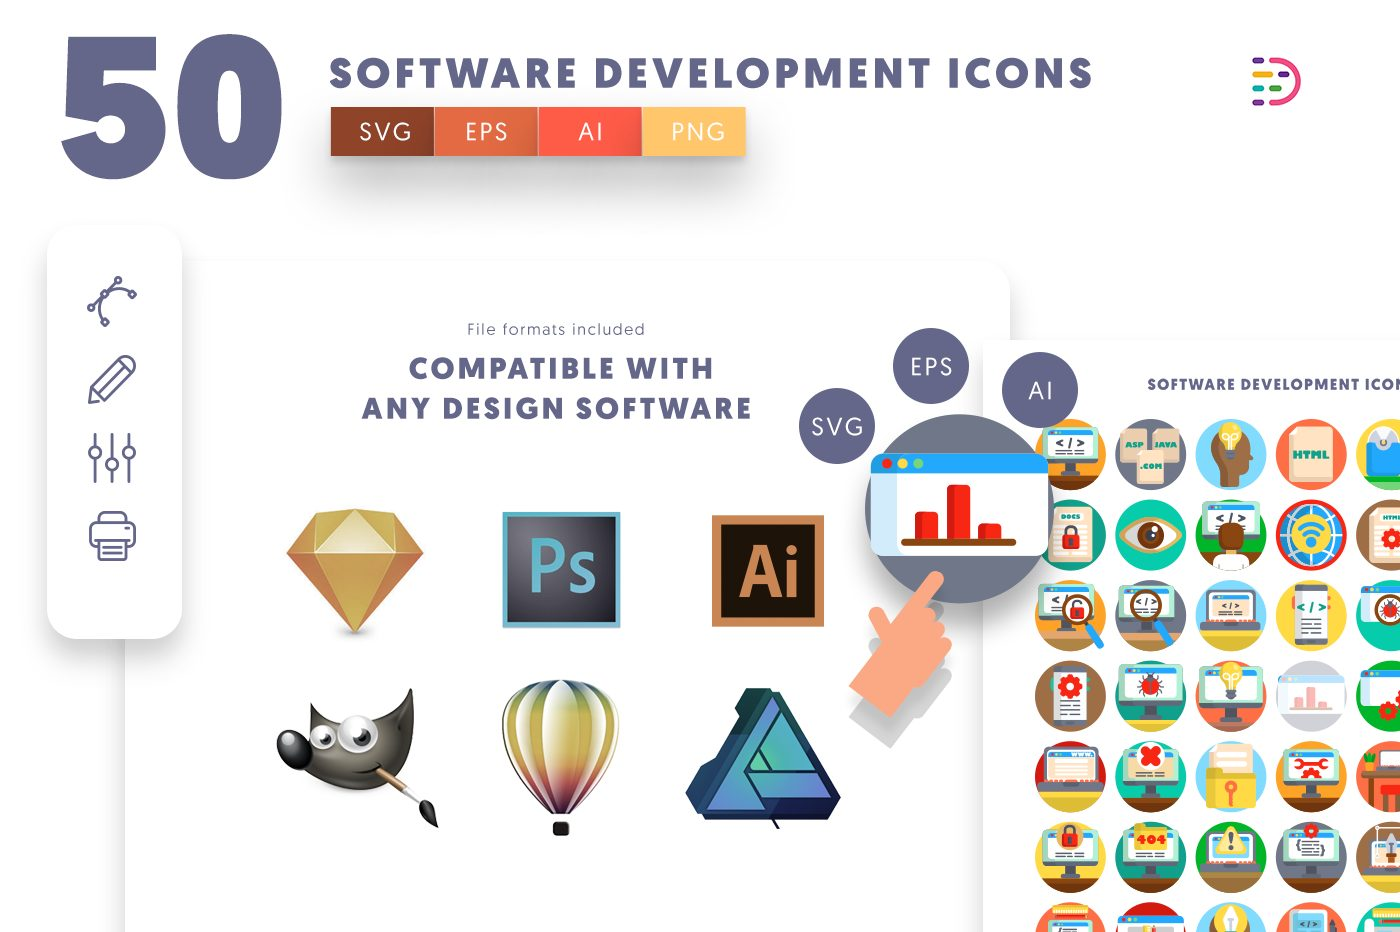 full vector 50 Software Development Icons EPS, SVG, PNG